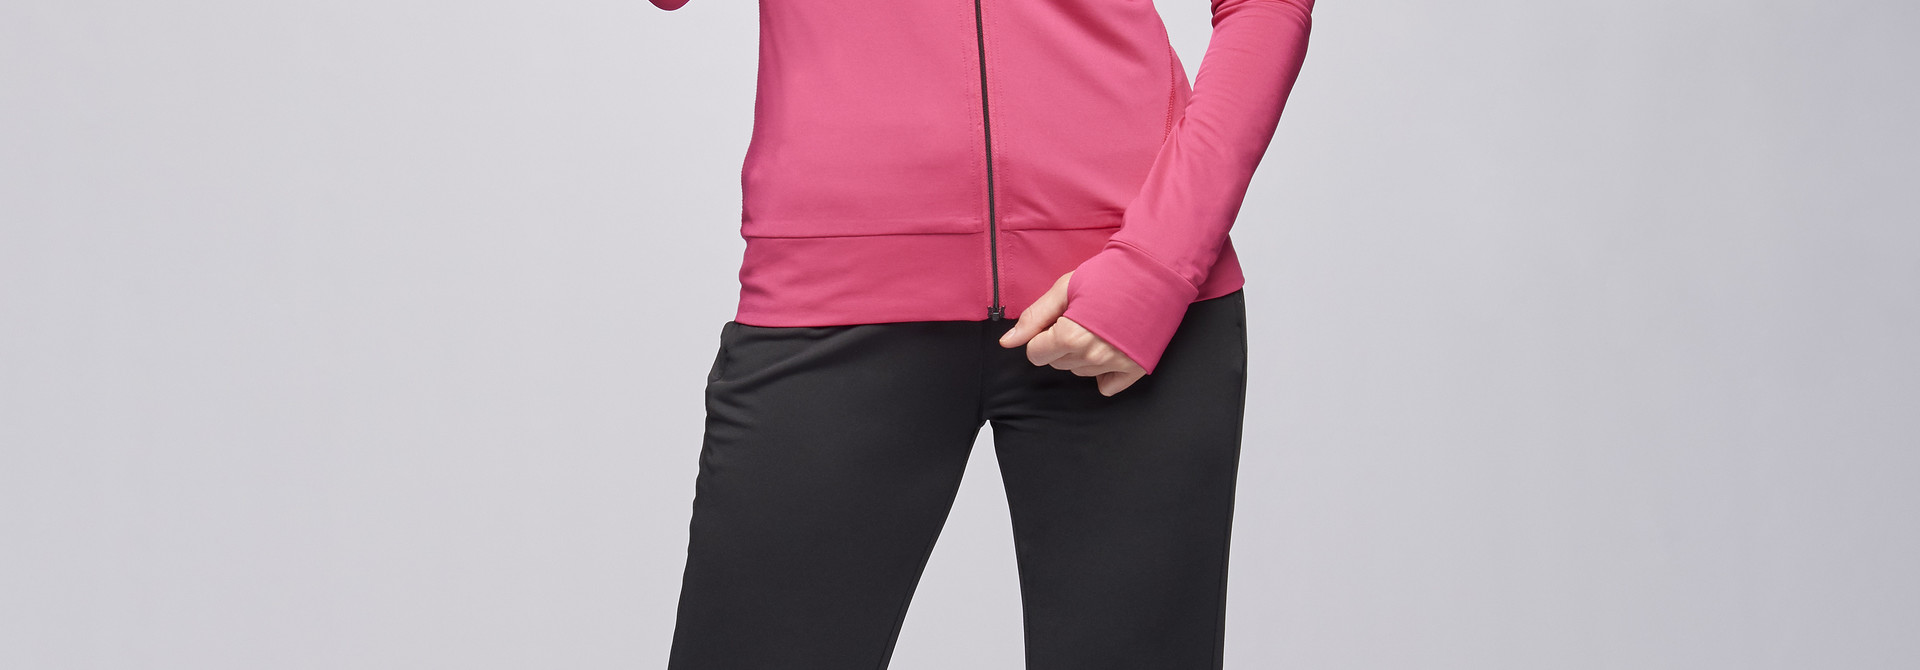 Ladies Sport Sweatshirts